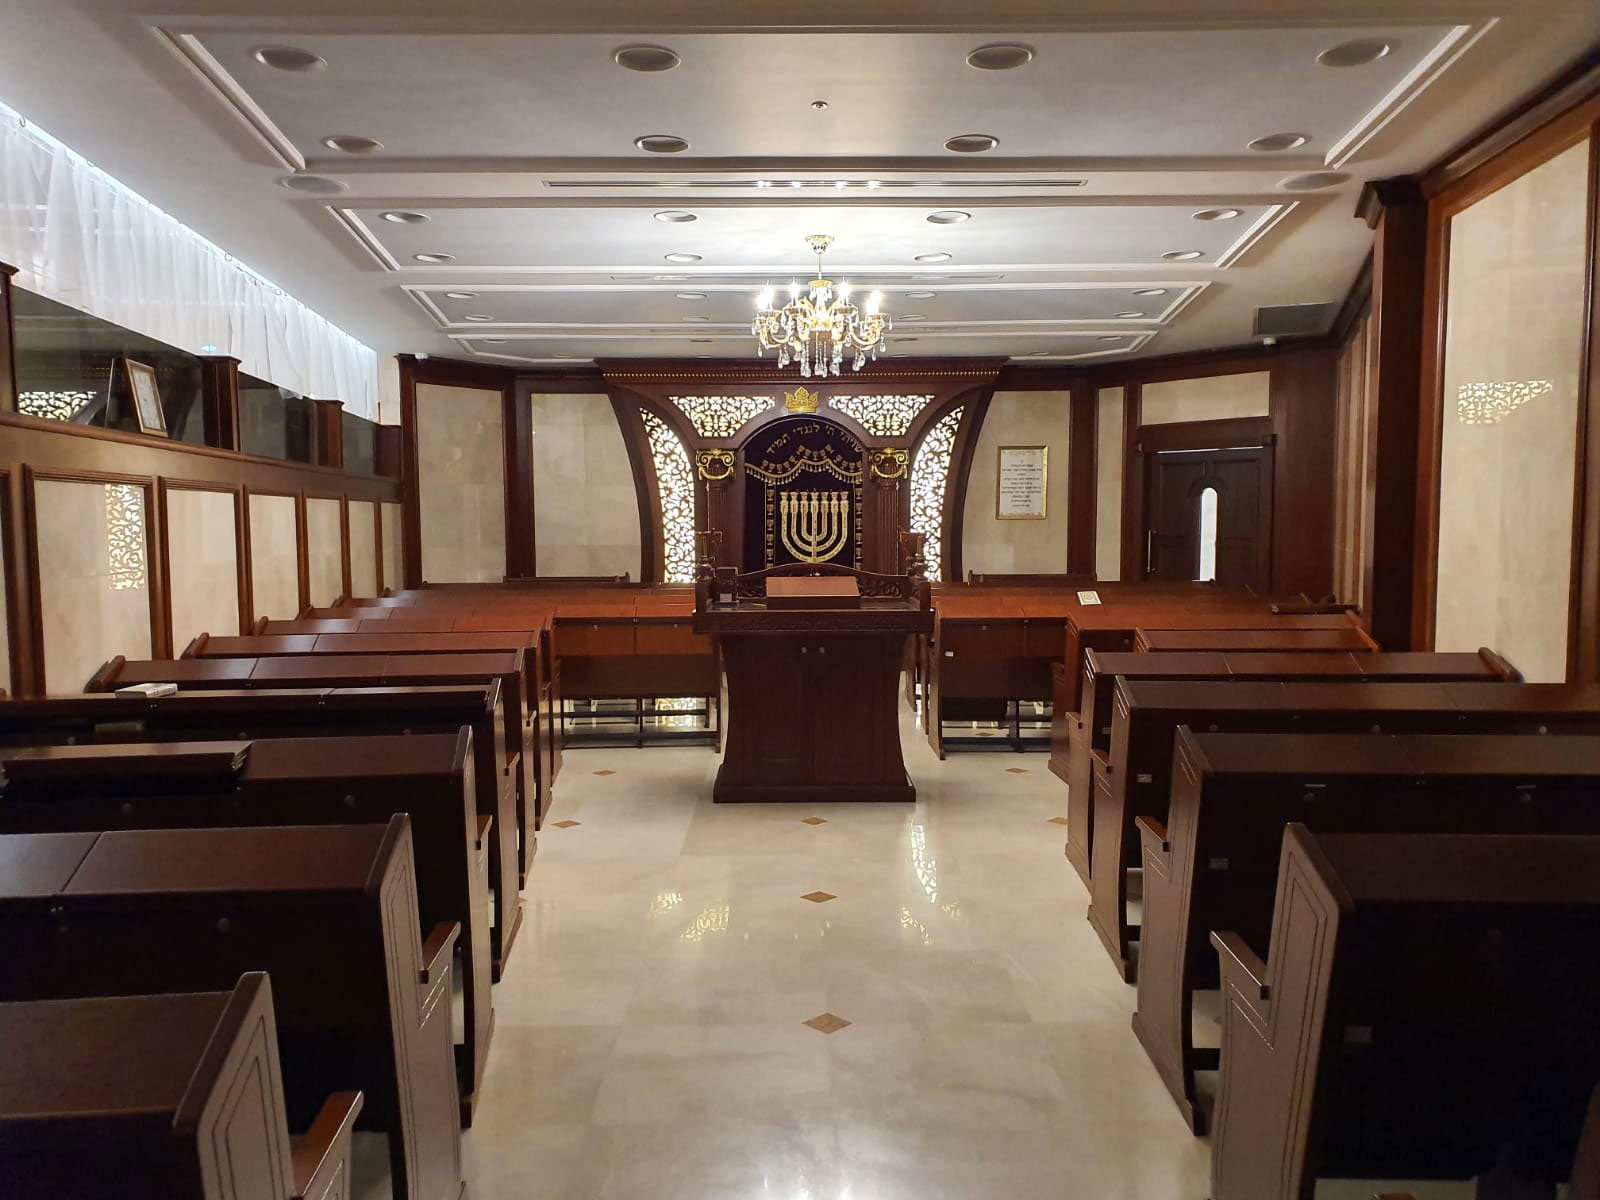 The Great Synagogue of Jerusalem